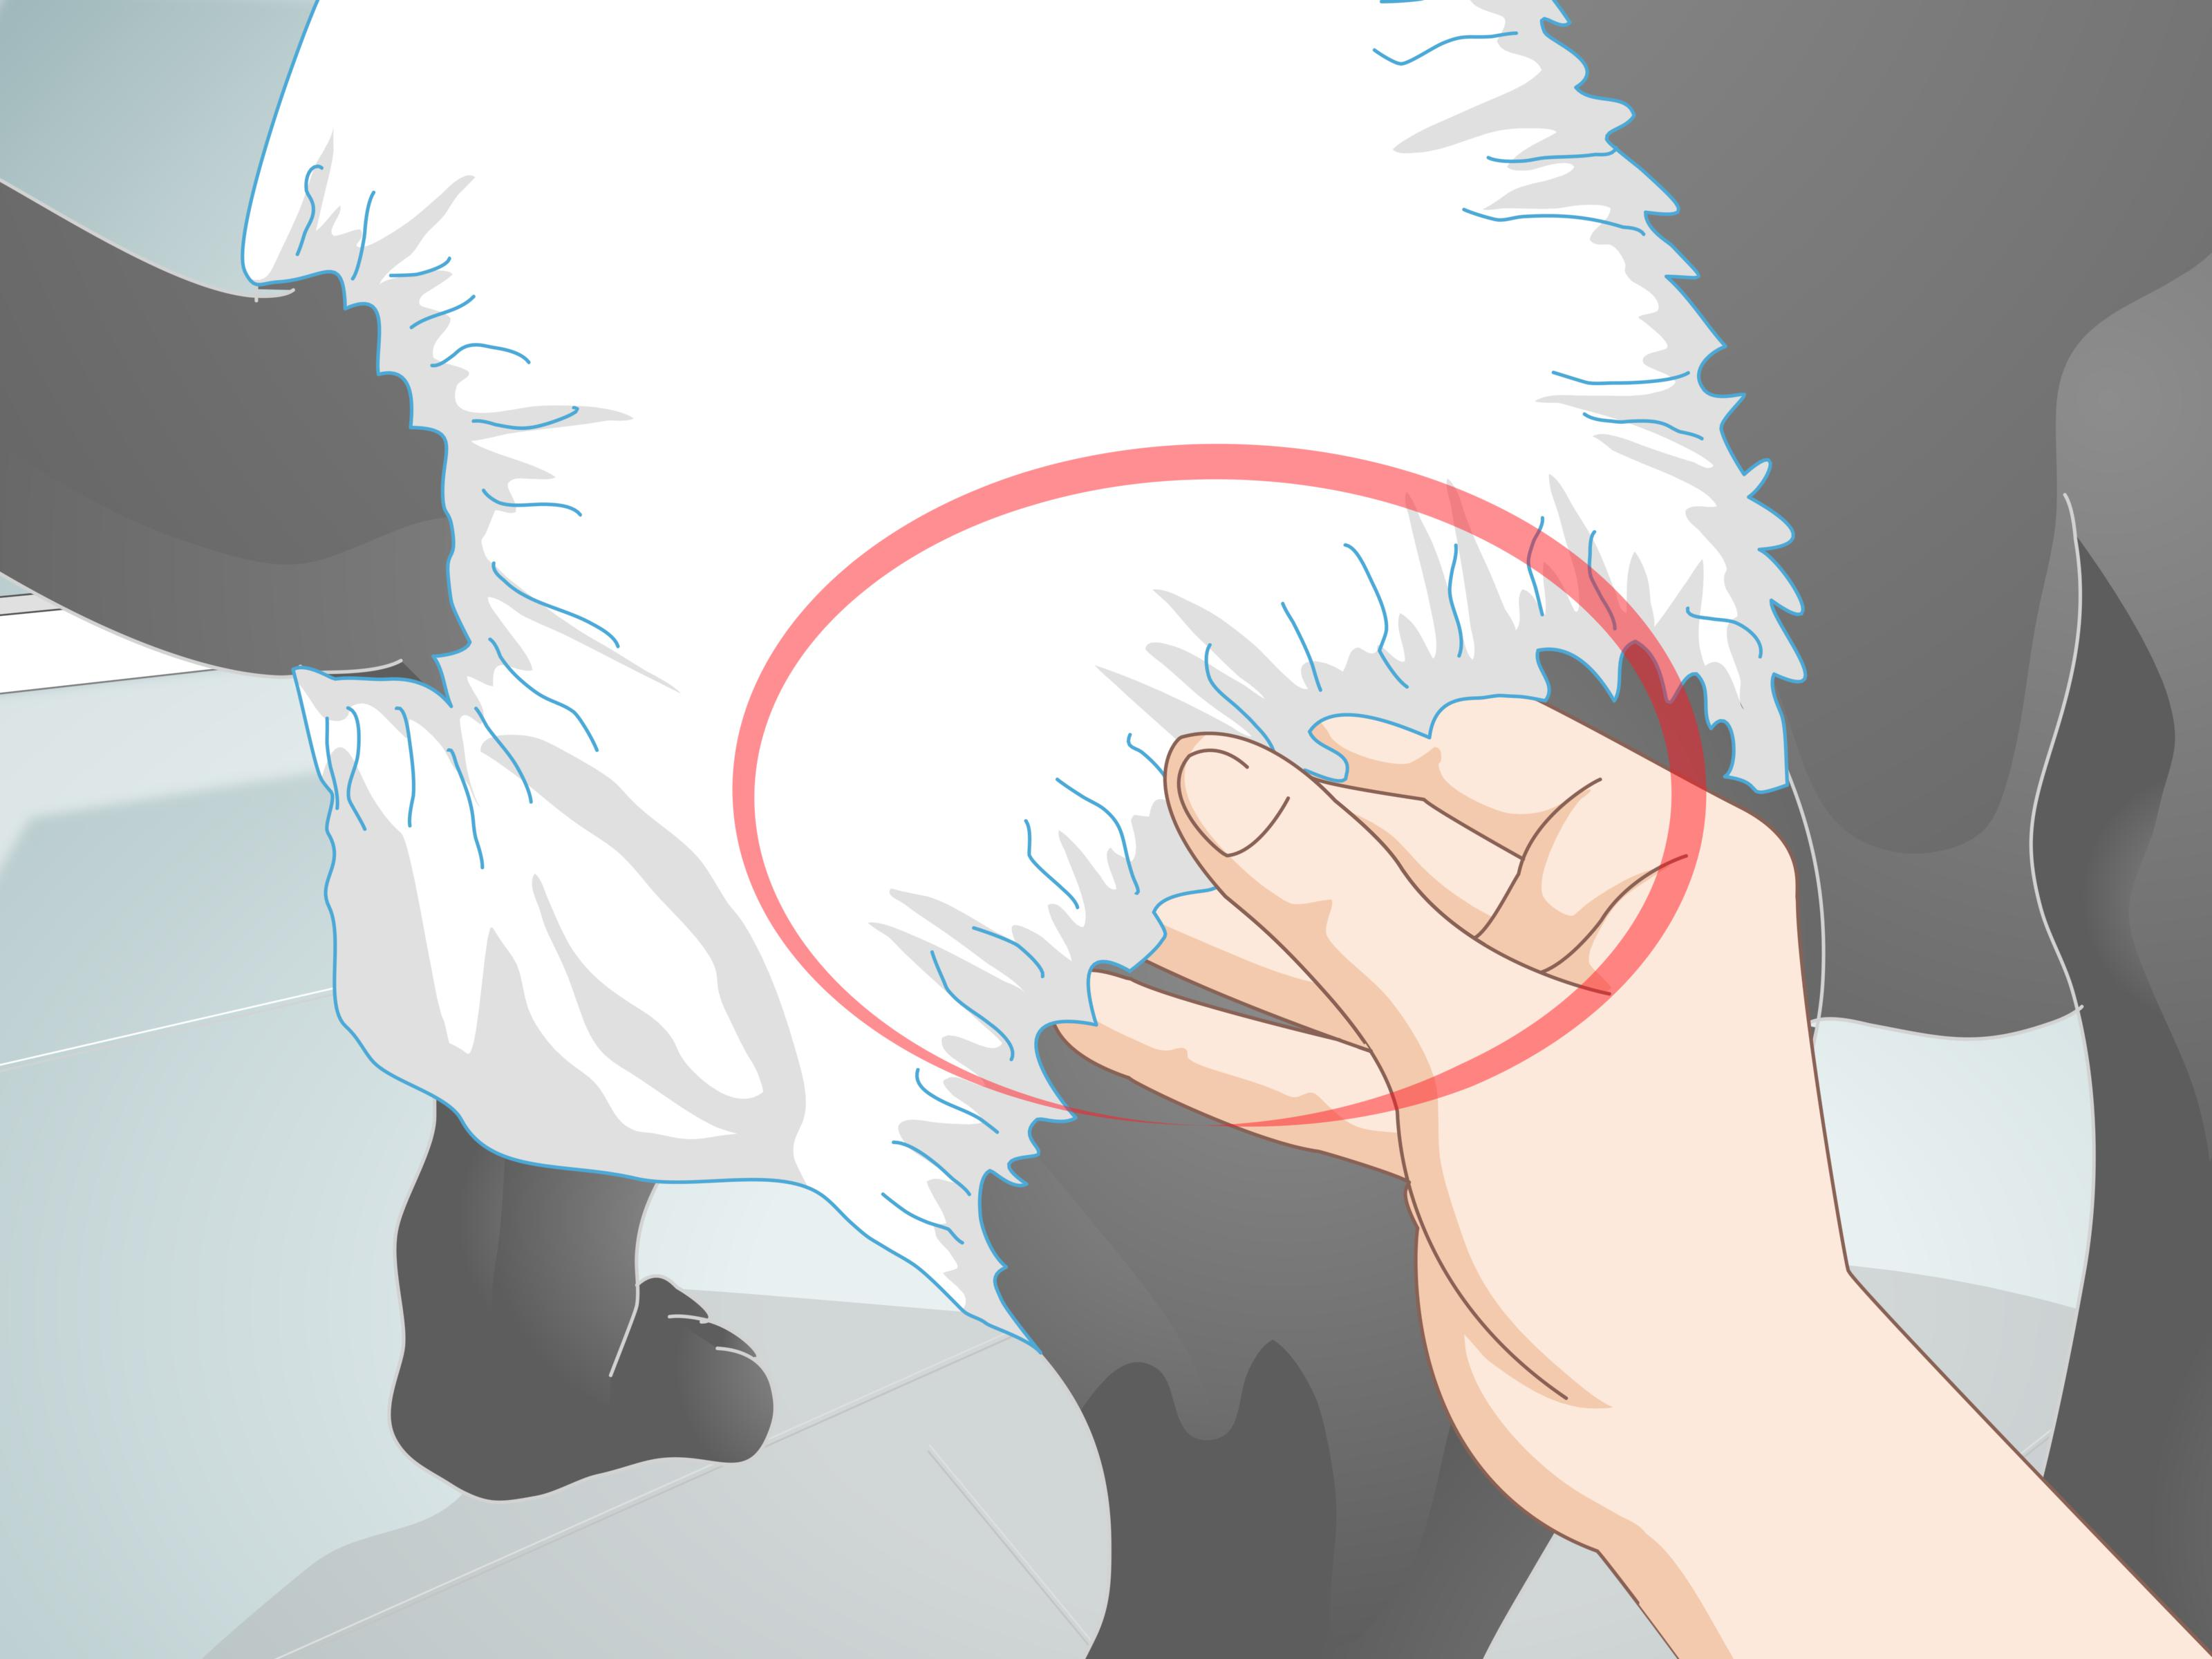 Animal House Wallpaper How To Buy Dog Diapers 11 Steps With Pictures Wikihow